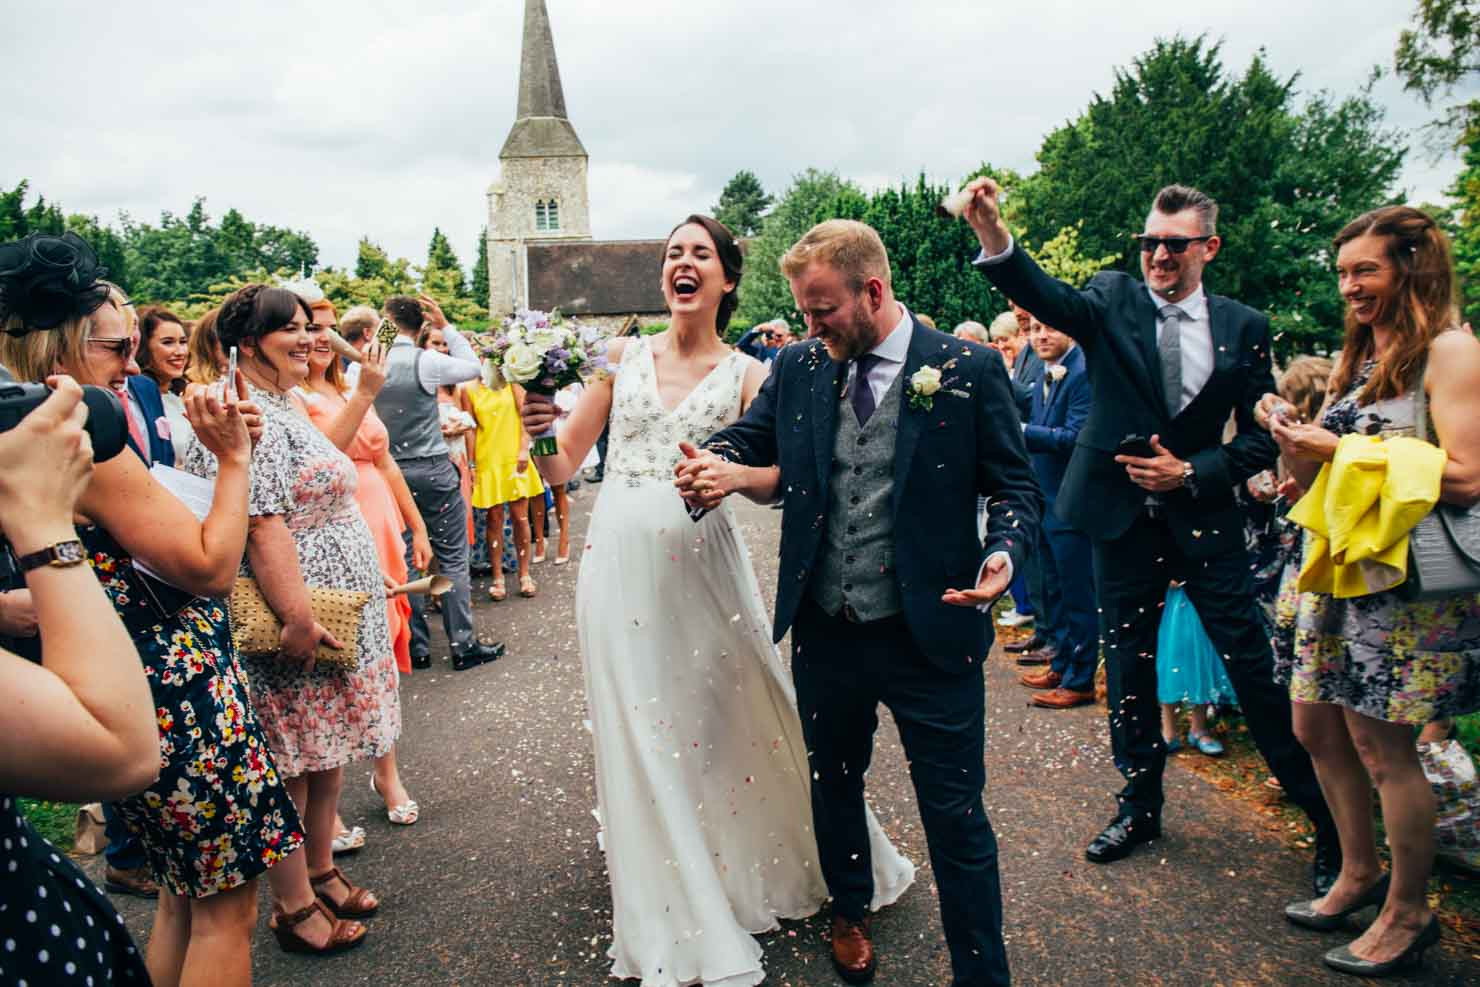 newlyweds down confetti line wedding photography in suffolk